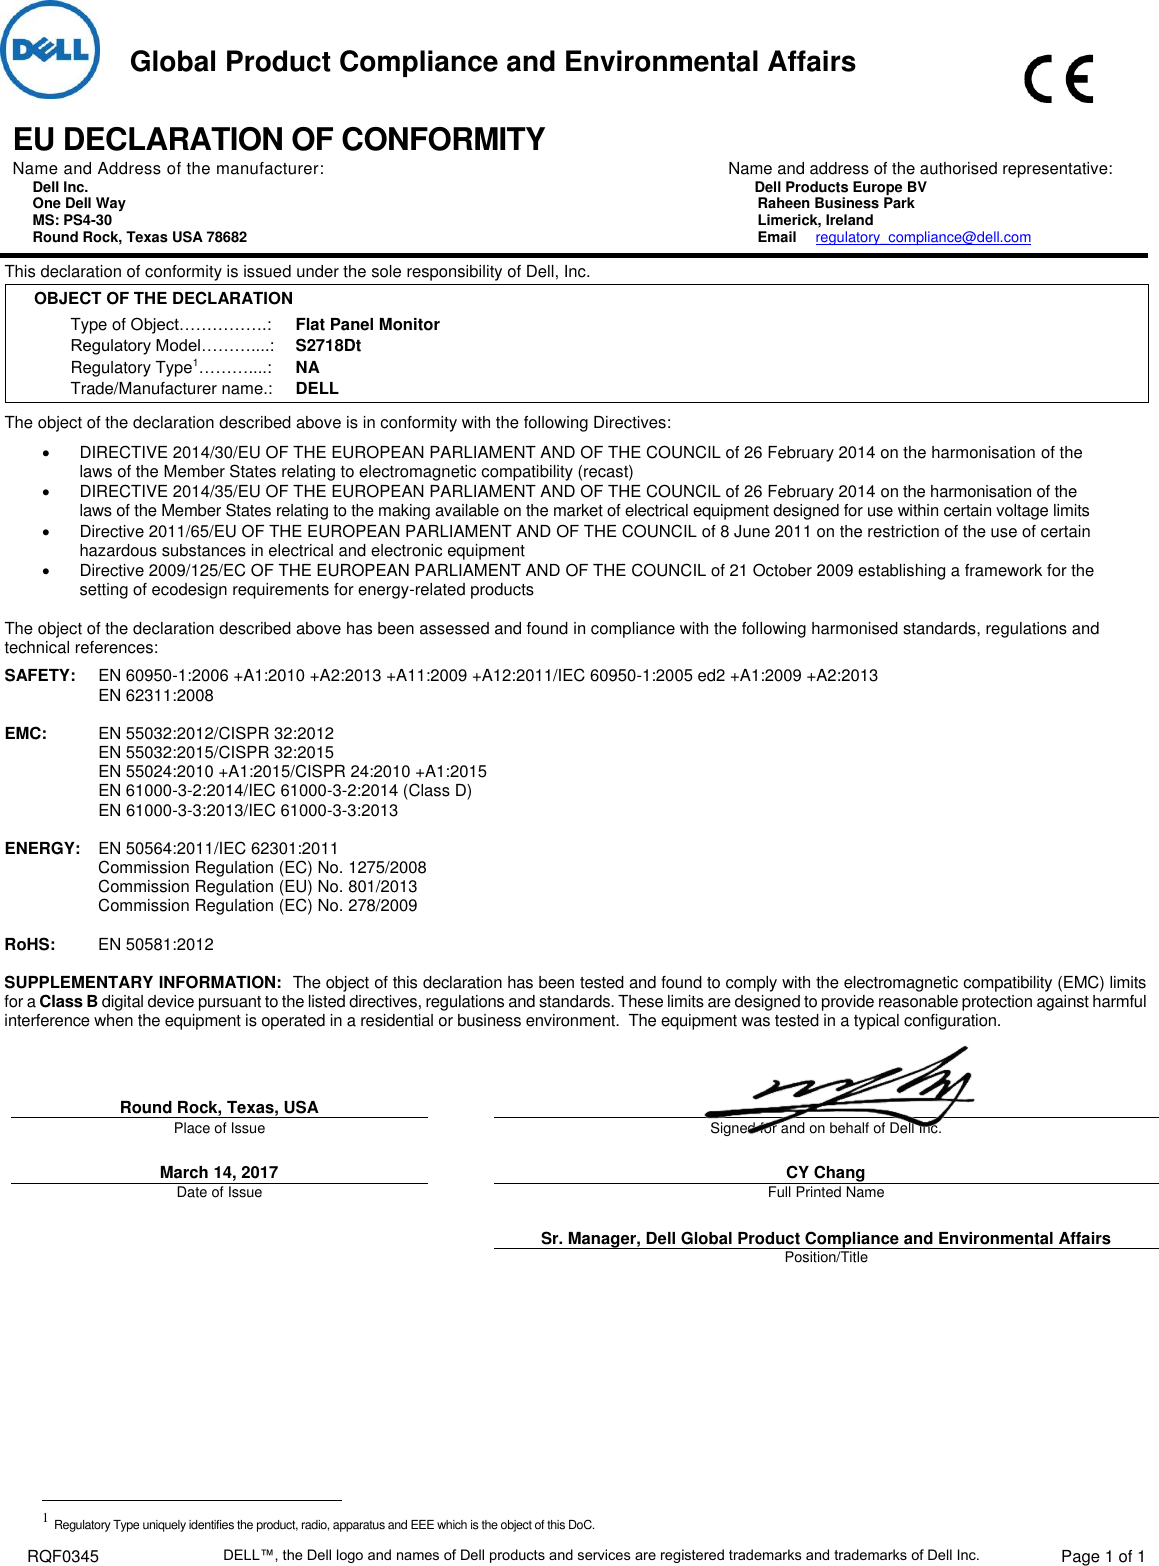 Page 1 of 1 - Dell Dell-s2718d-monitor RQF0345 User Manual  - EUROPEAN UNION CE Declaration Of Conformity Monitor S2718d,s2718dt,n A,european